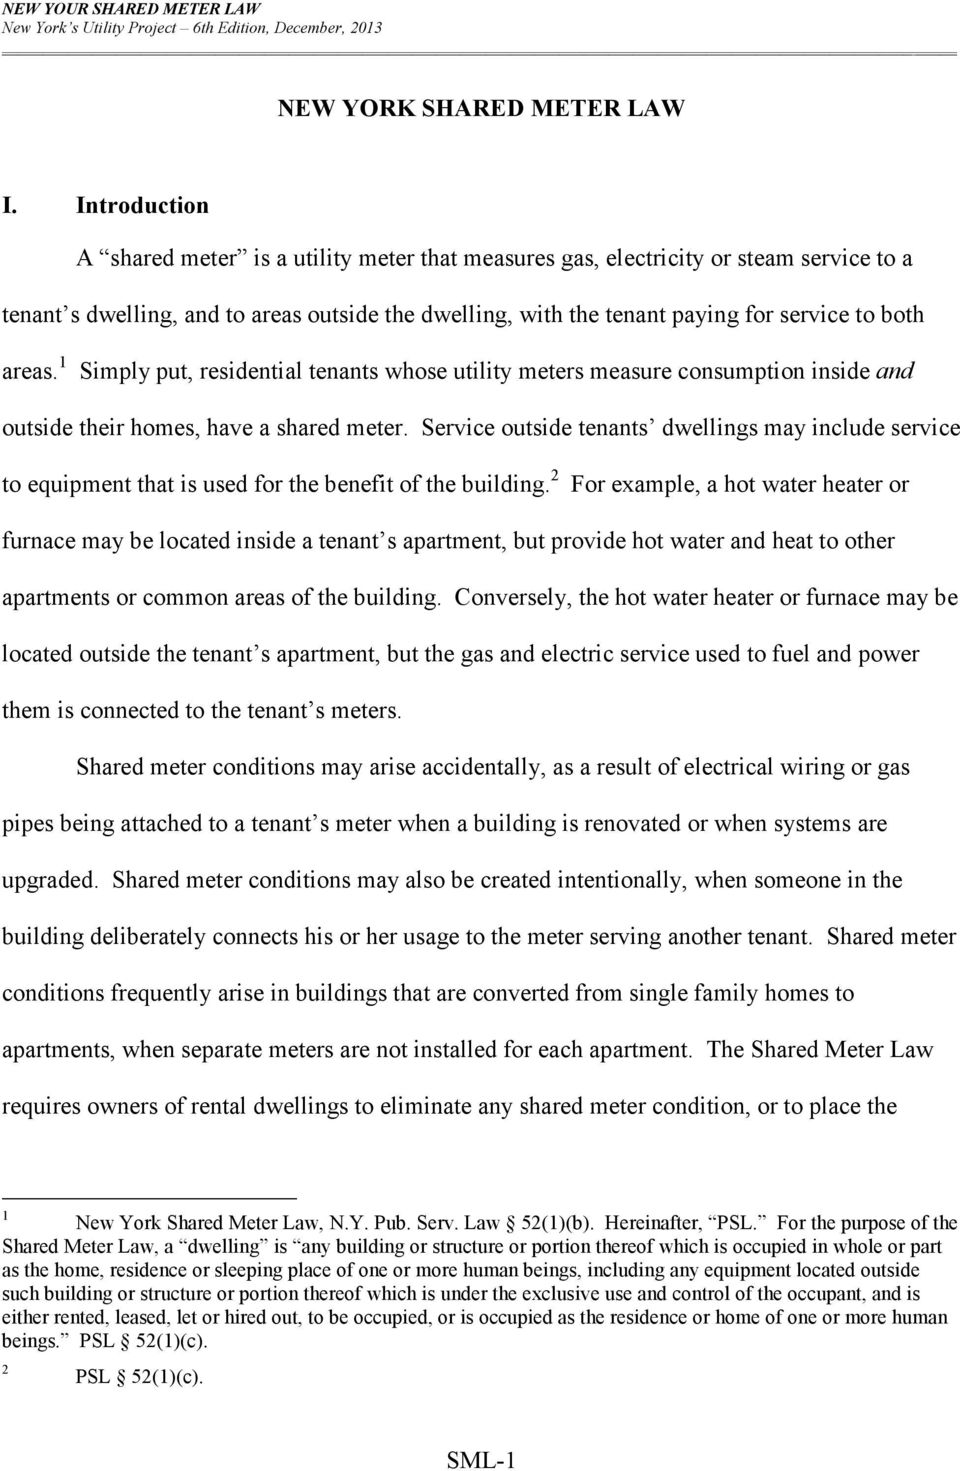 NEW YORK SHARED METER LAW - PDF